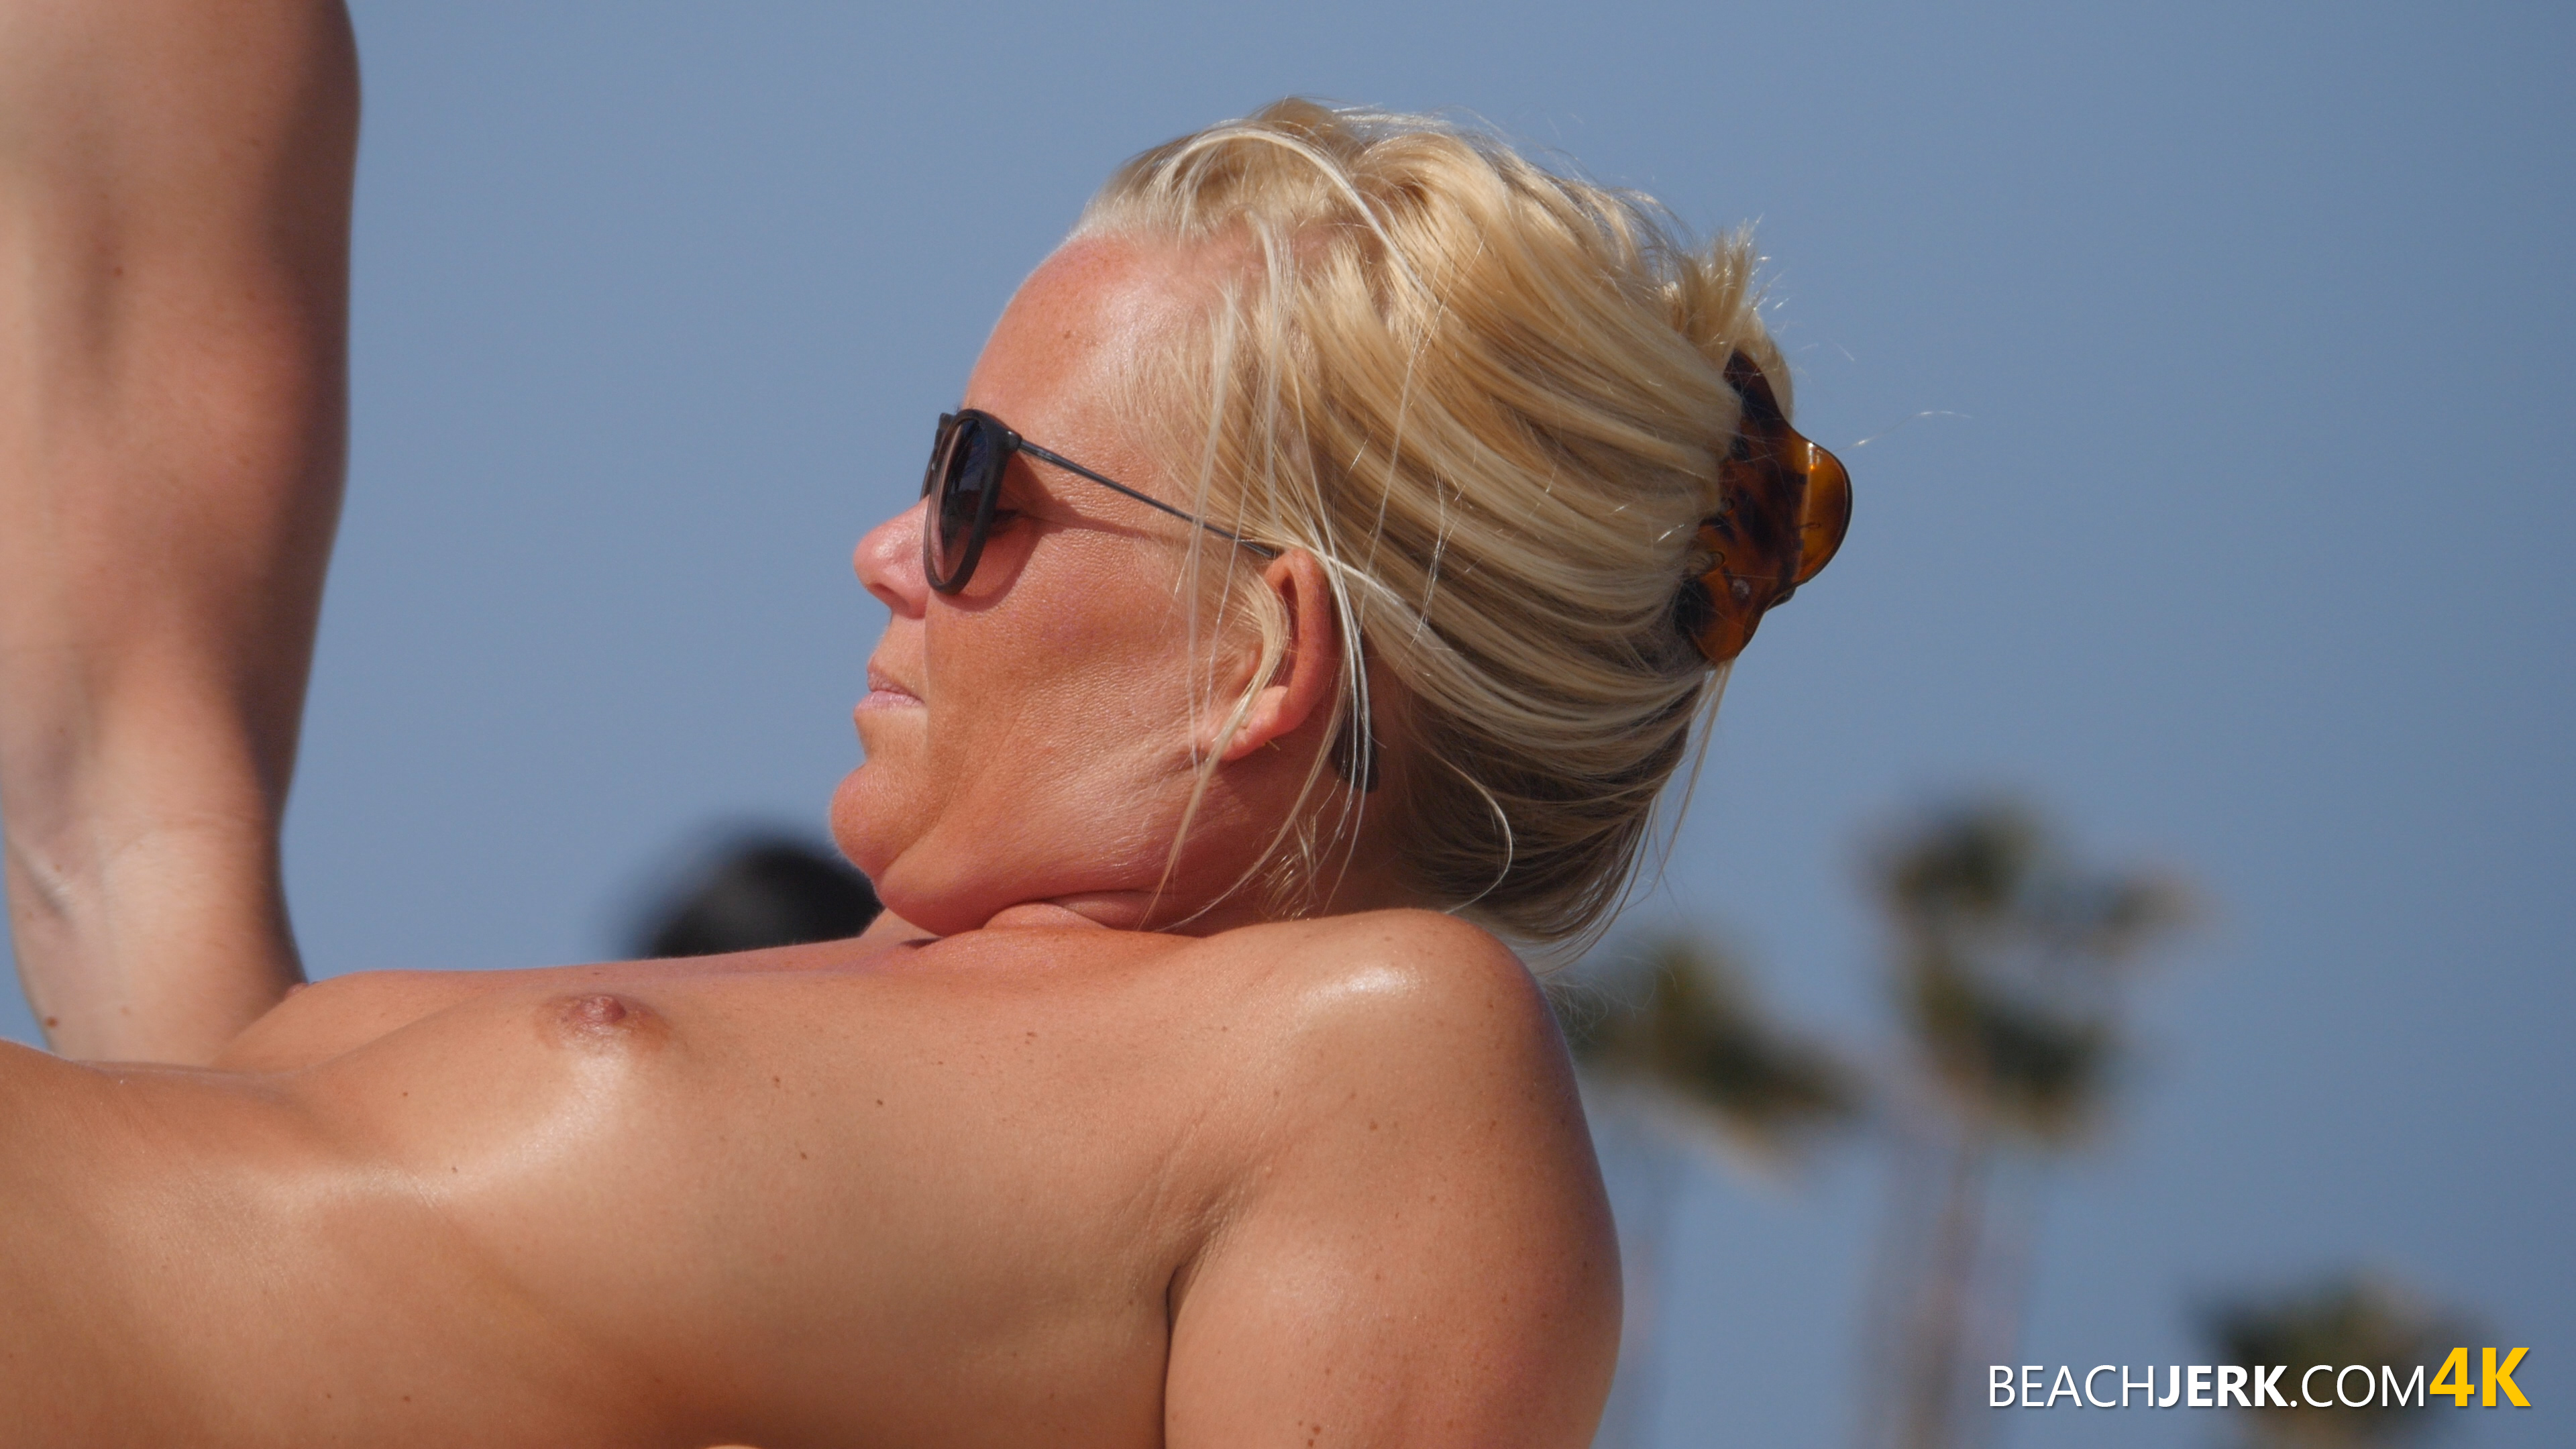 Mummy On The Beach With Her Tits Out - Beach Jerk-5462